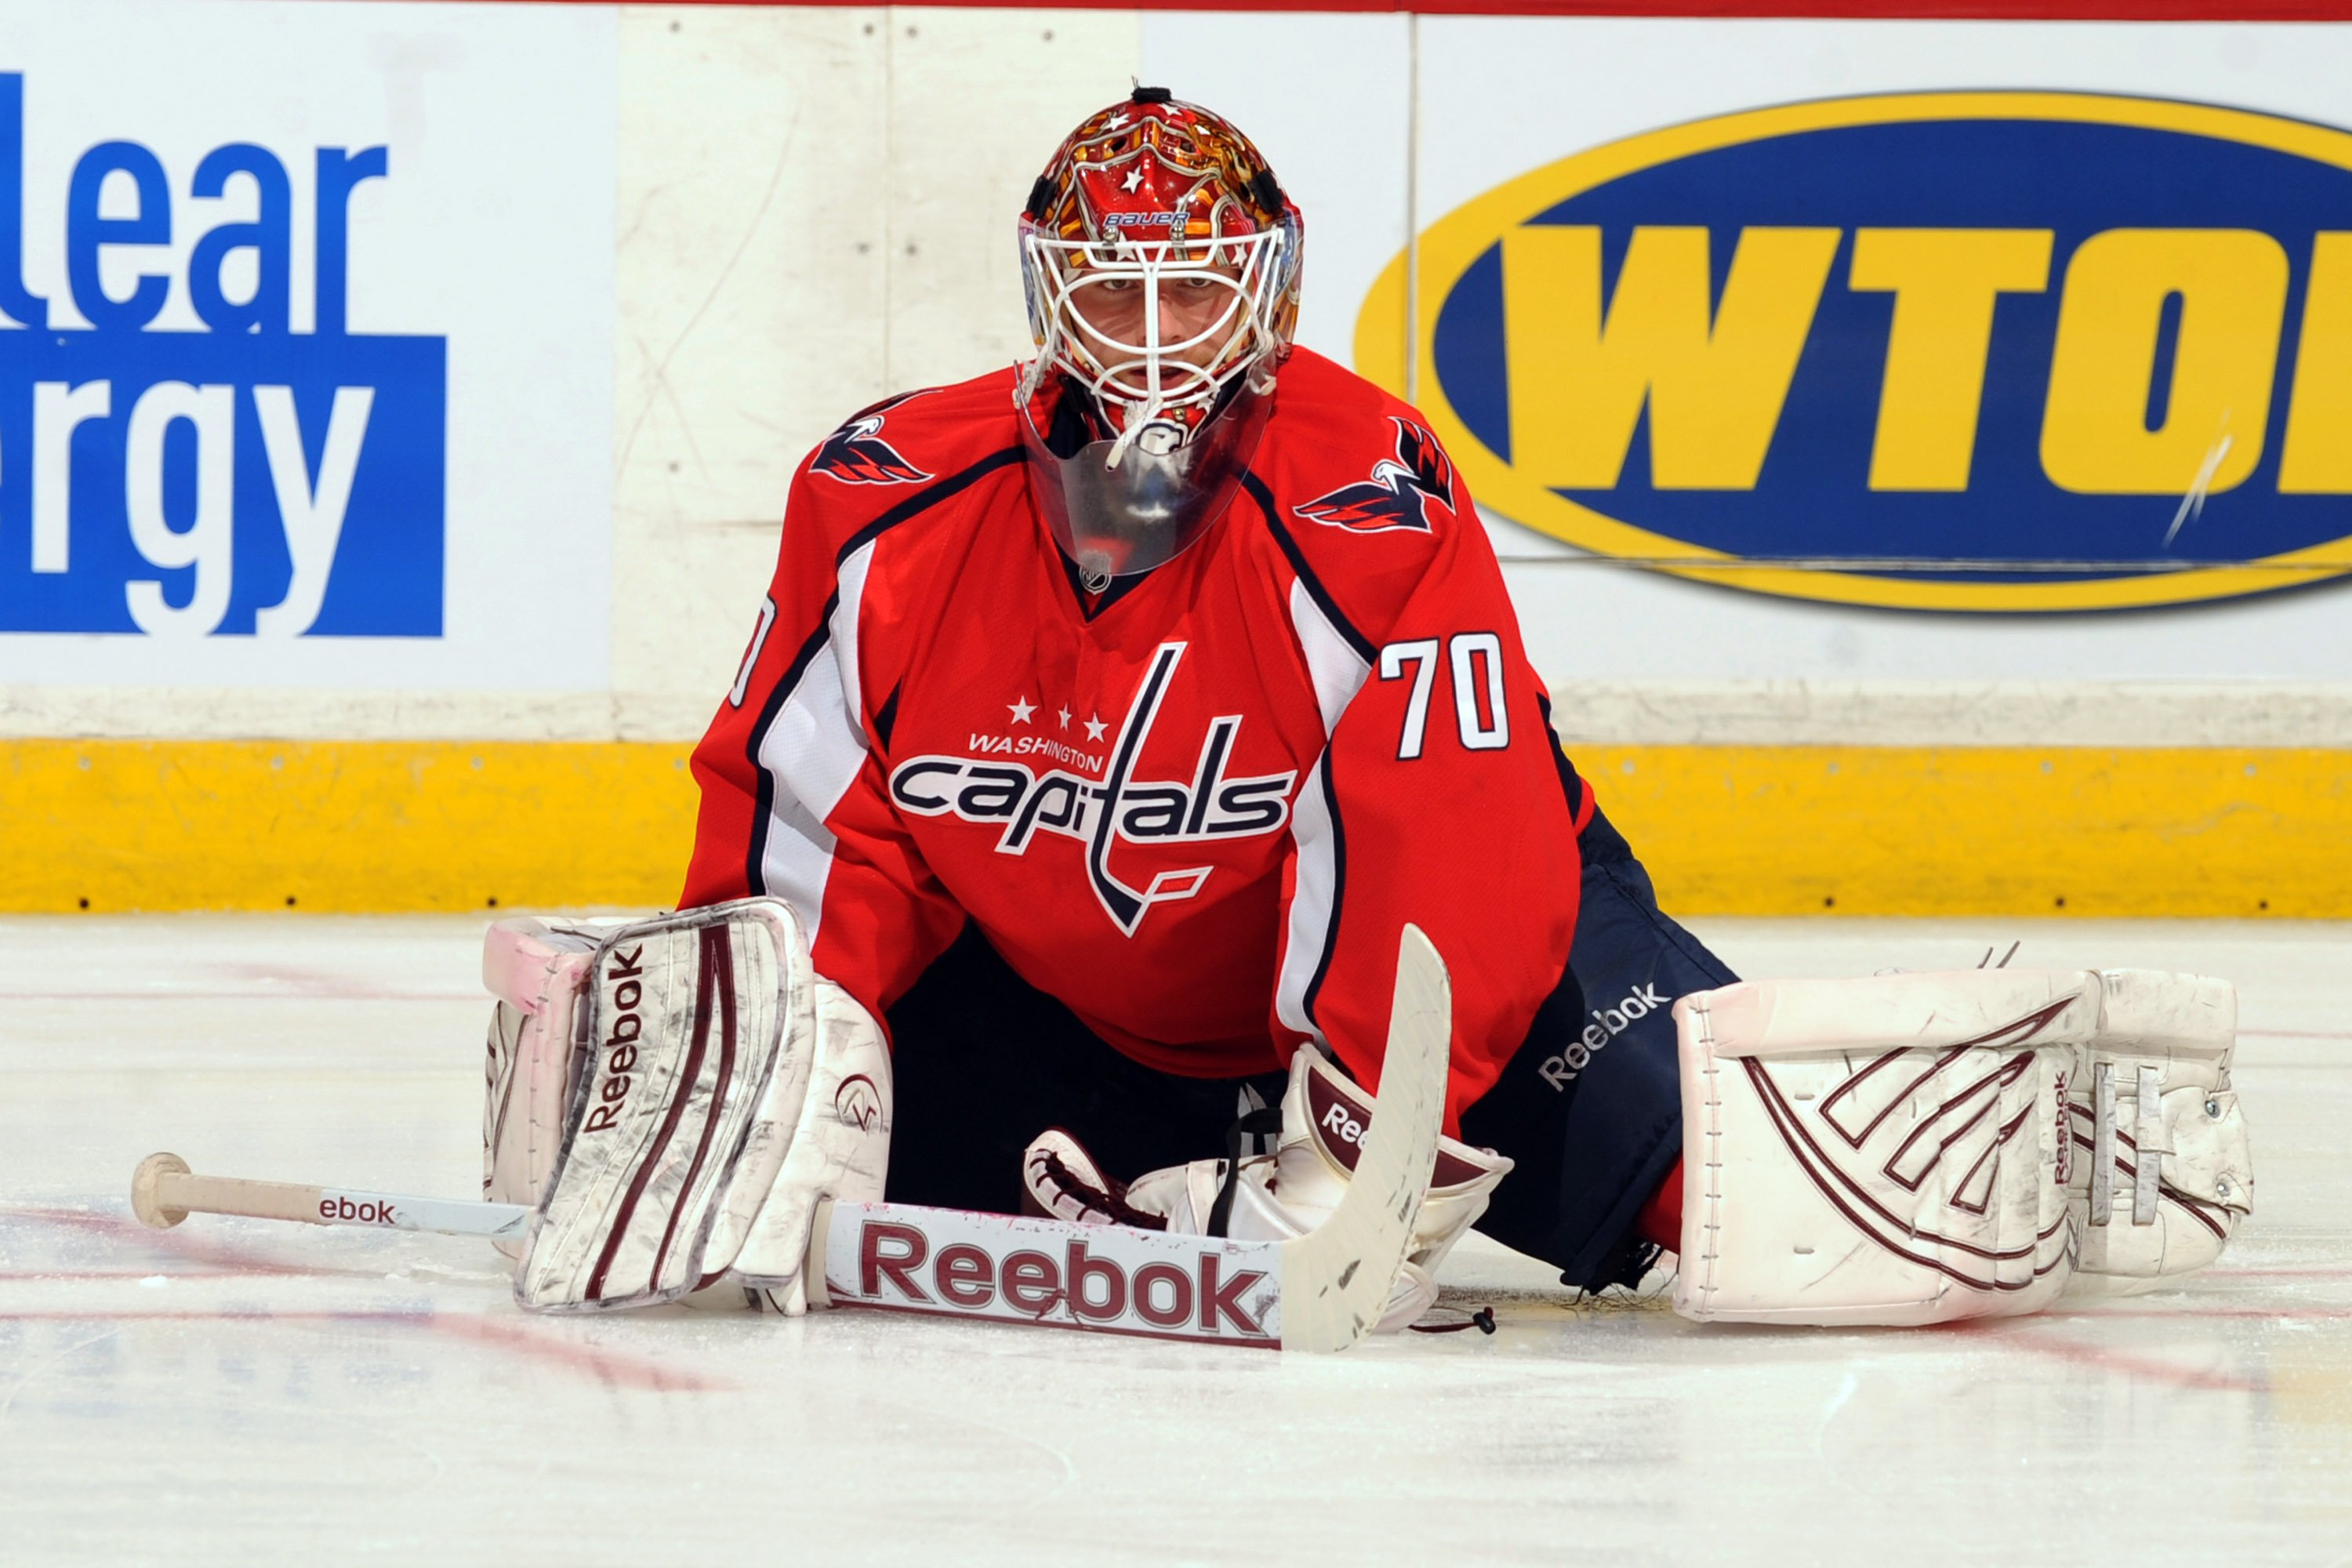 WASHINGTON CAPITALS hockey nhl 15 wallpaper 3000x2000 359656 3000x2000